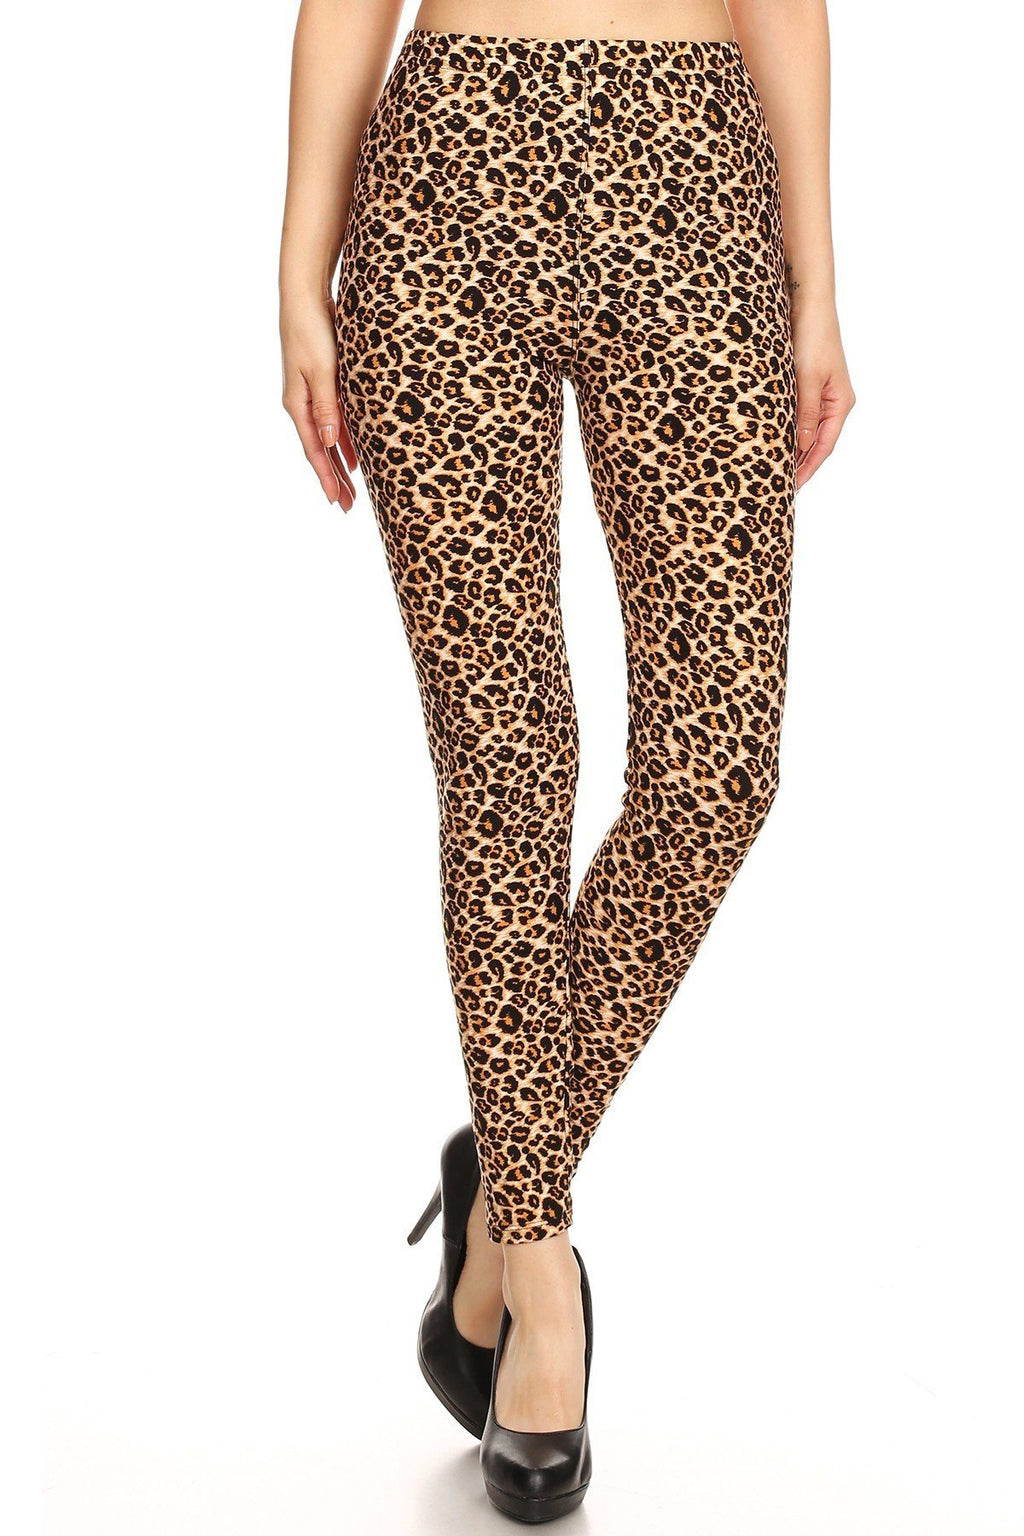 Leopard Printed, Full Length, High Waisted Leggings In A Fitted Style With An Elastic Waistband. - De Bawa Inc.